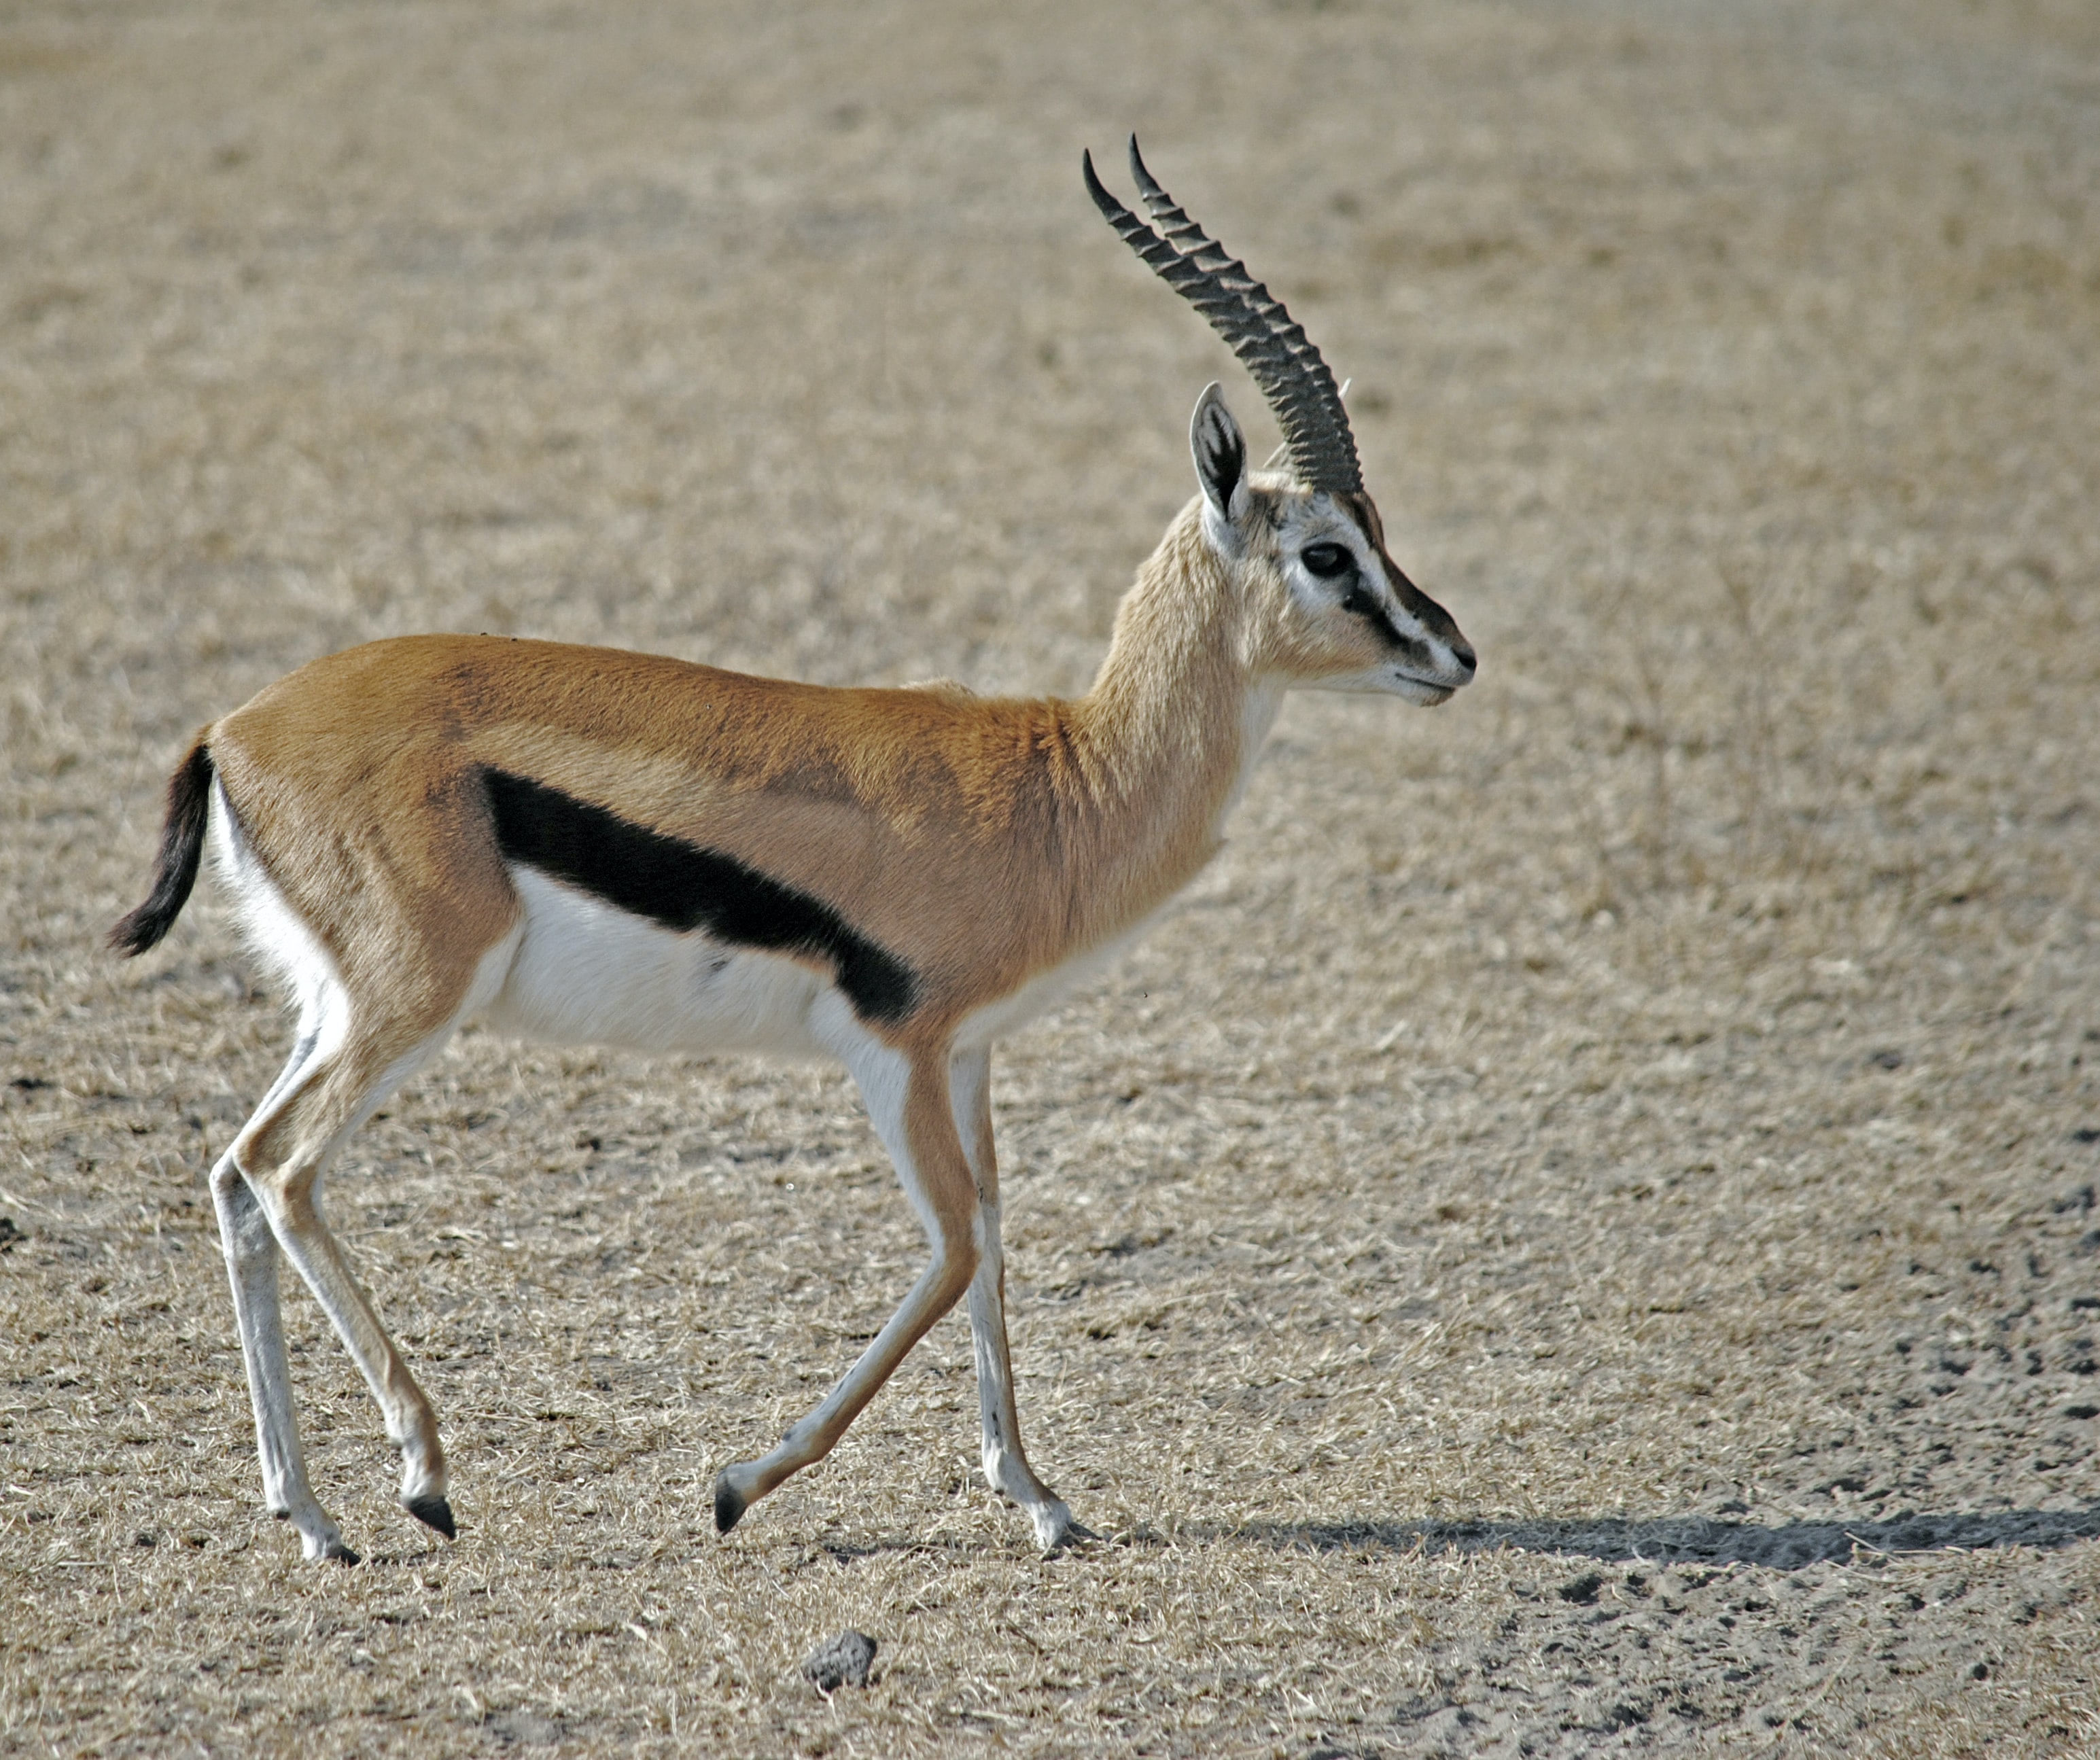 brown, white, and black gazelle on brown sand during daytime